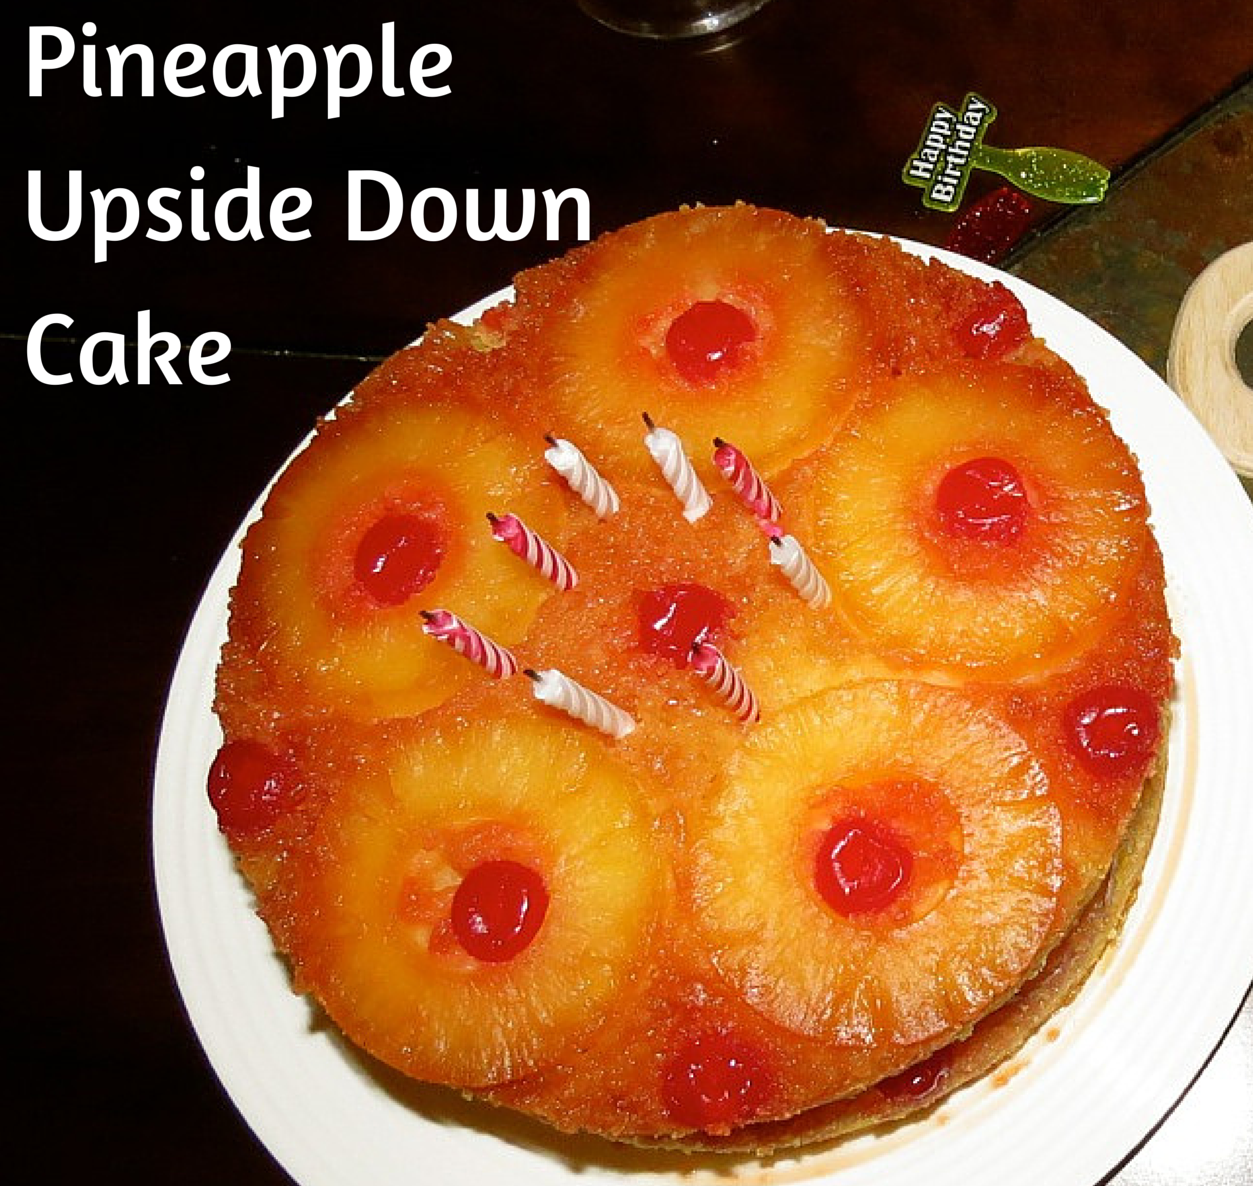 Betty Crocker Pineapple Upside Down Cakes